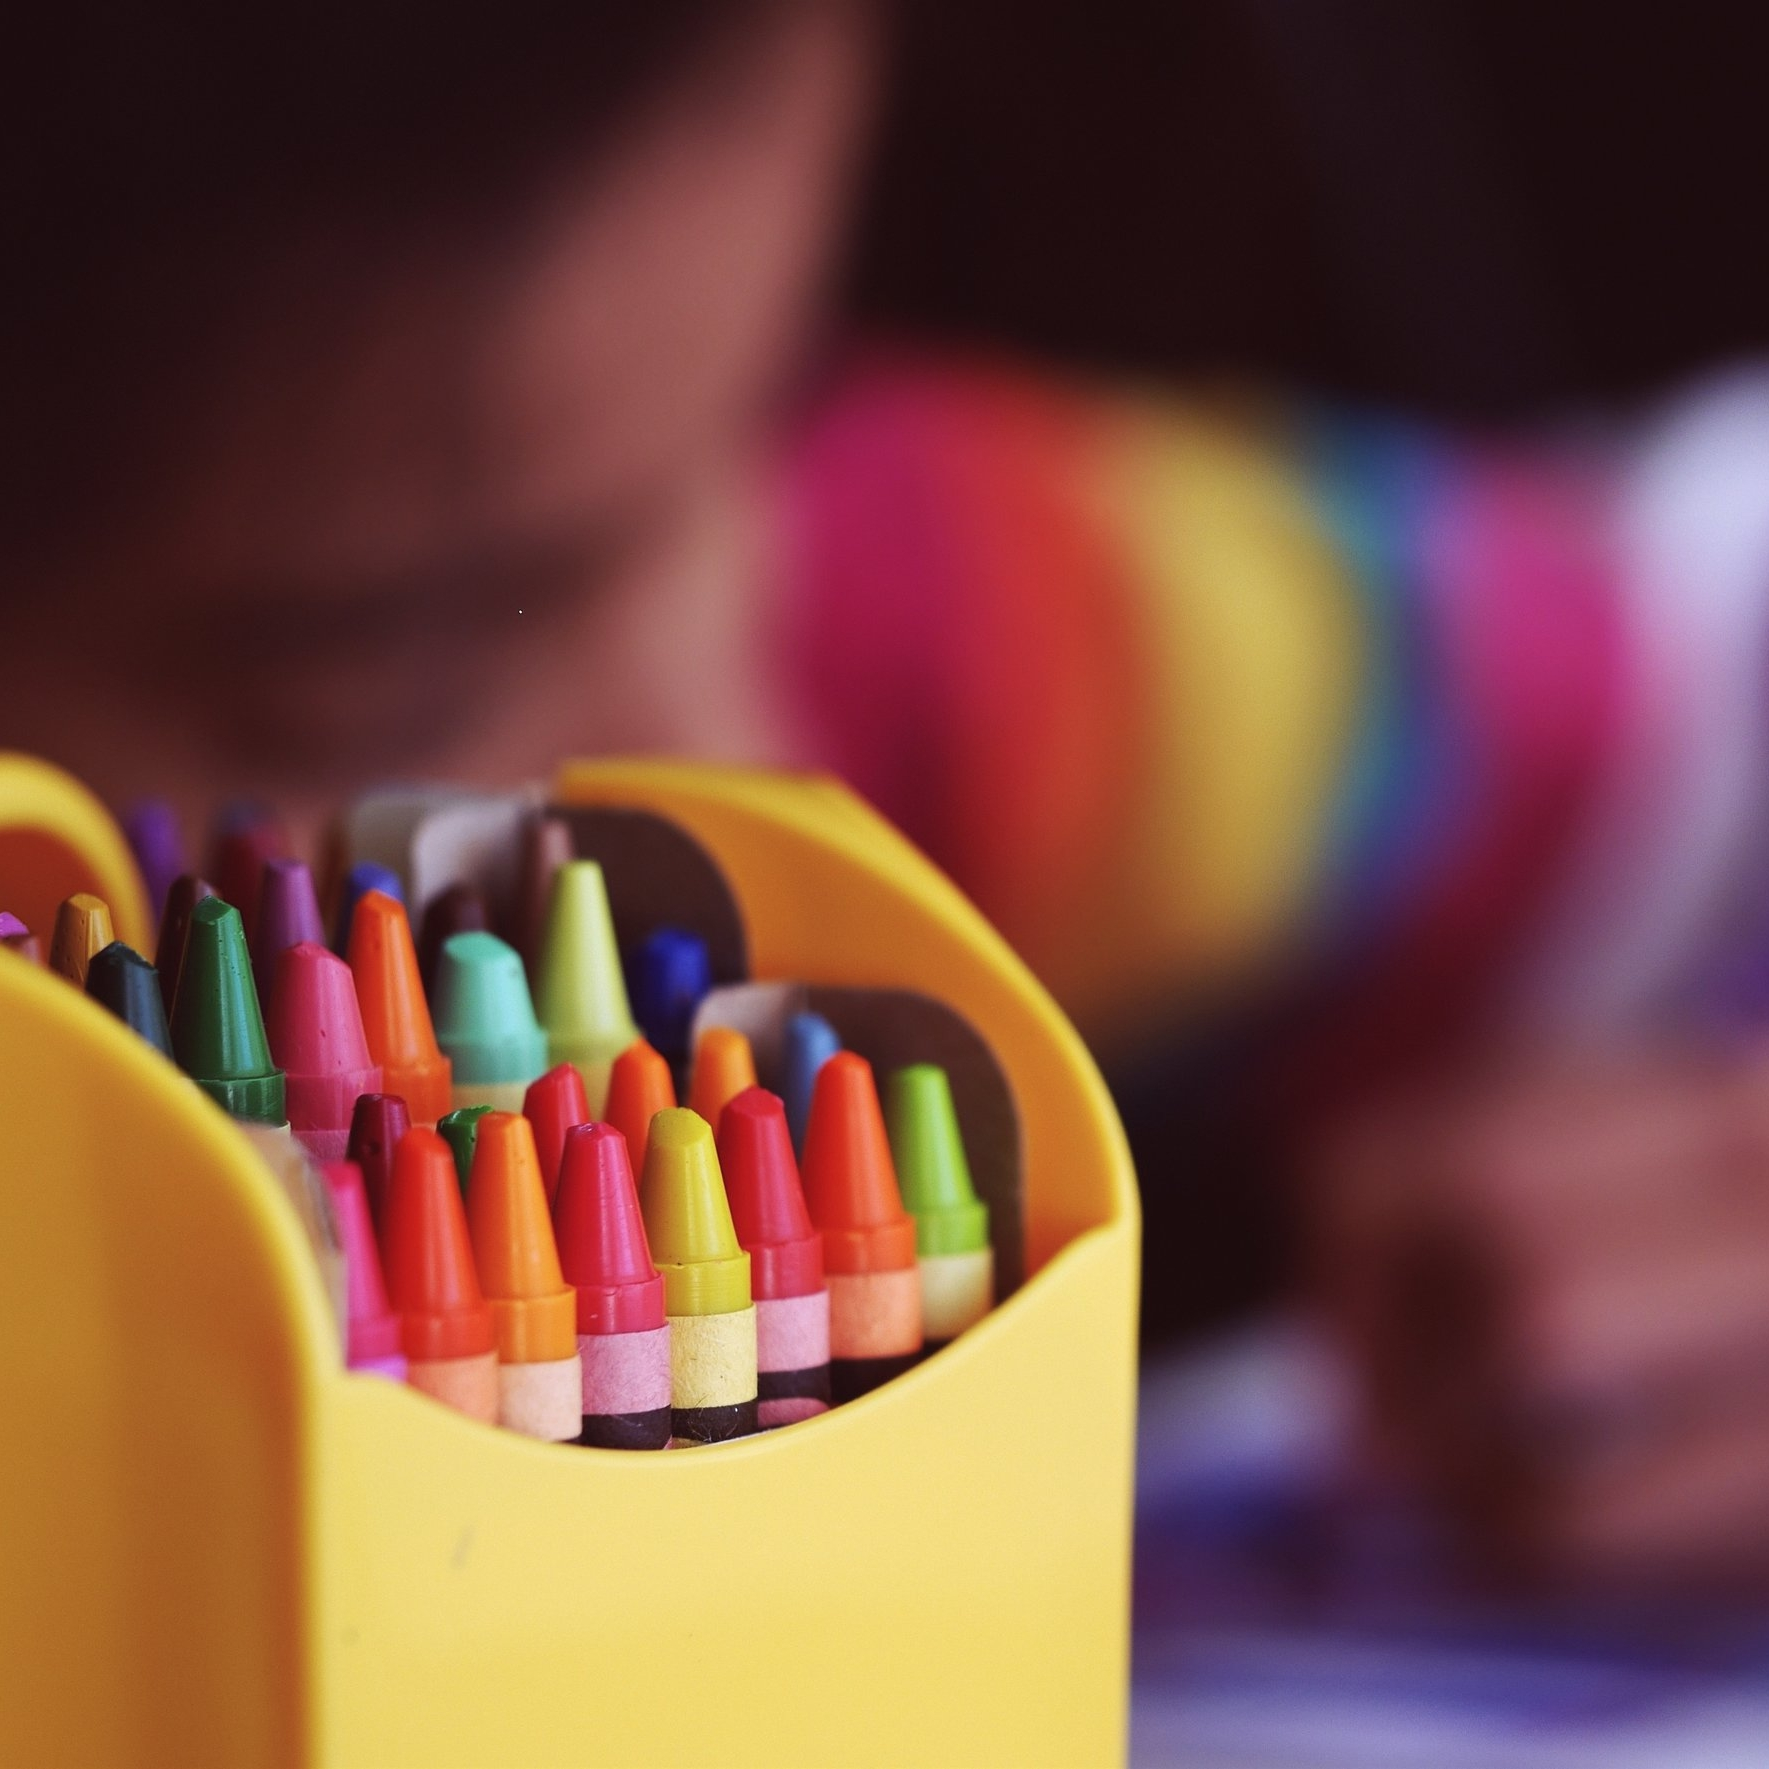 Preschool Classes - 3 Years Old to 5 Years Old